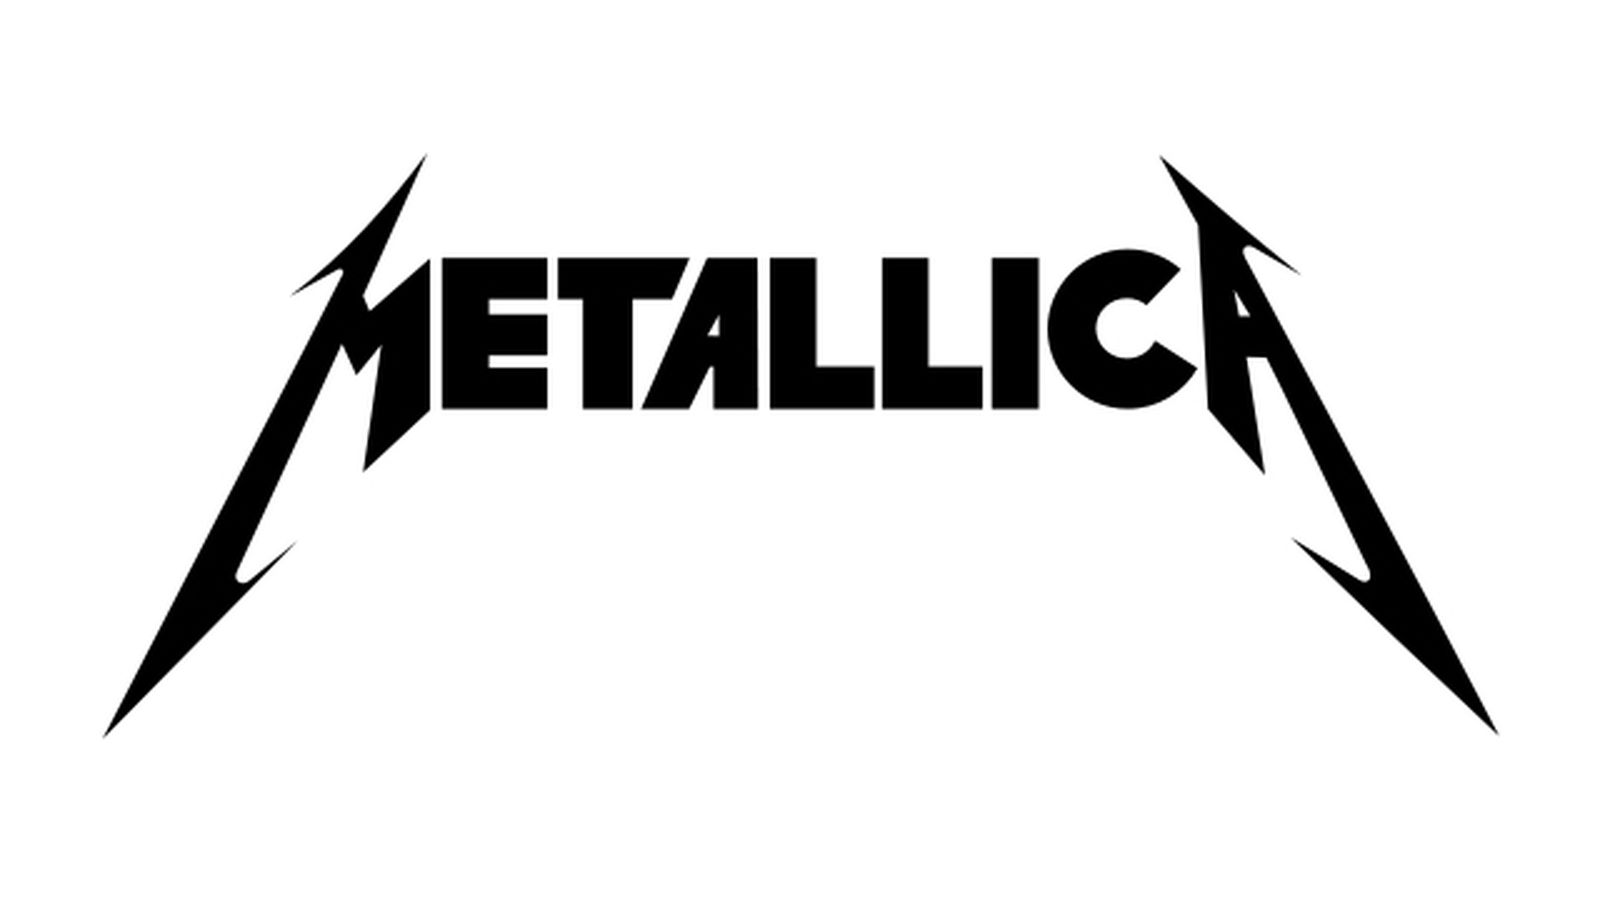 Digital Music Antagonists Metallica Finally Come To